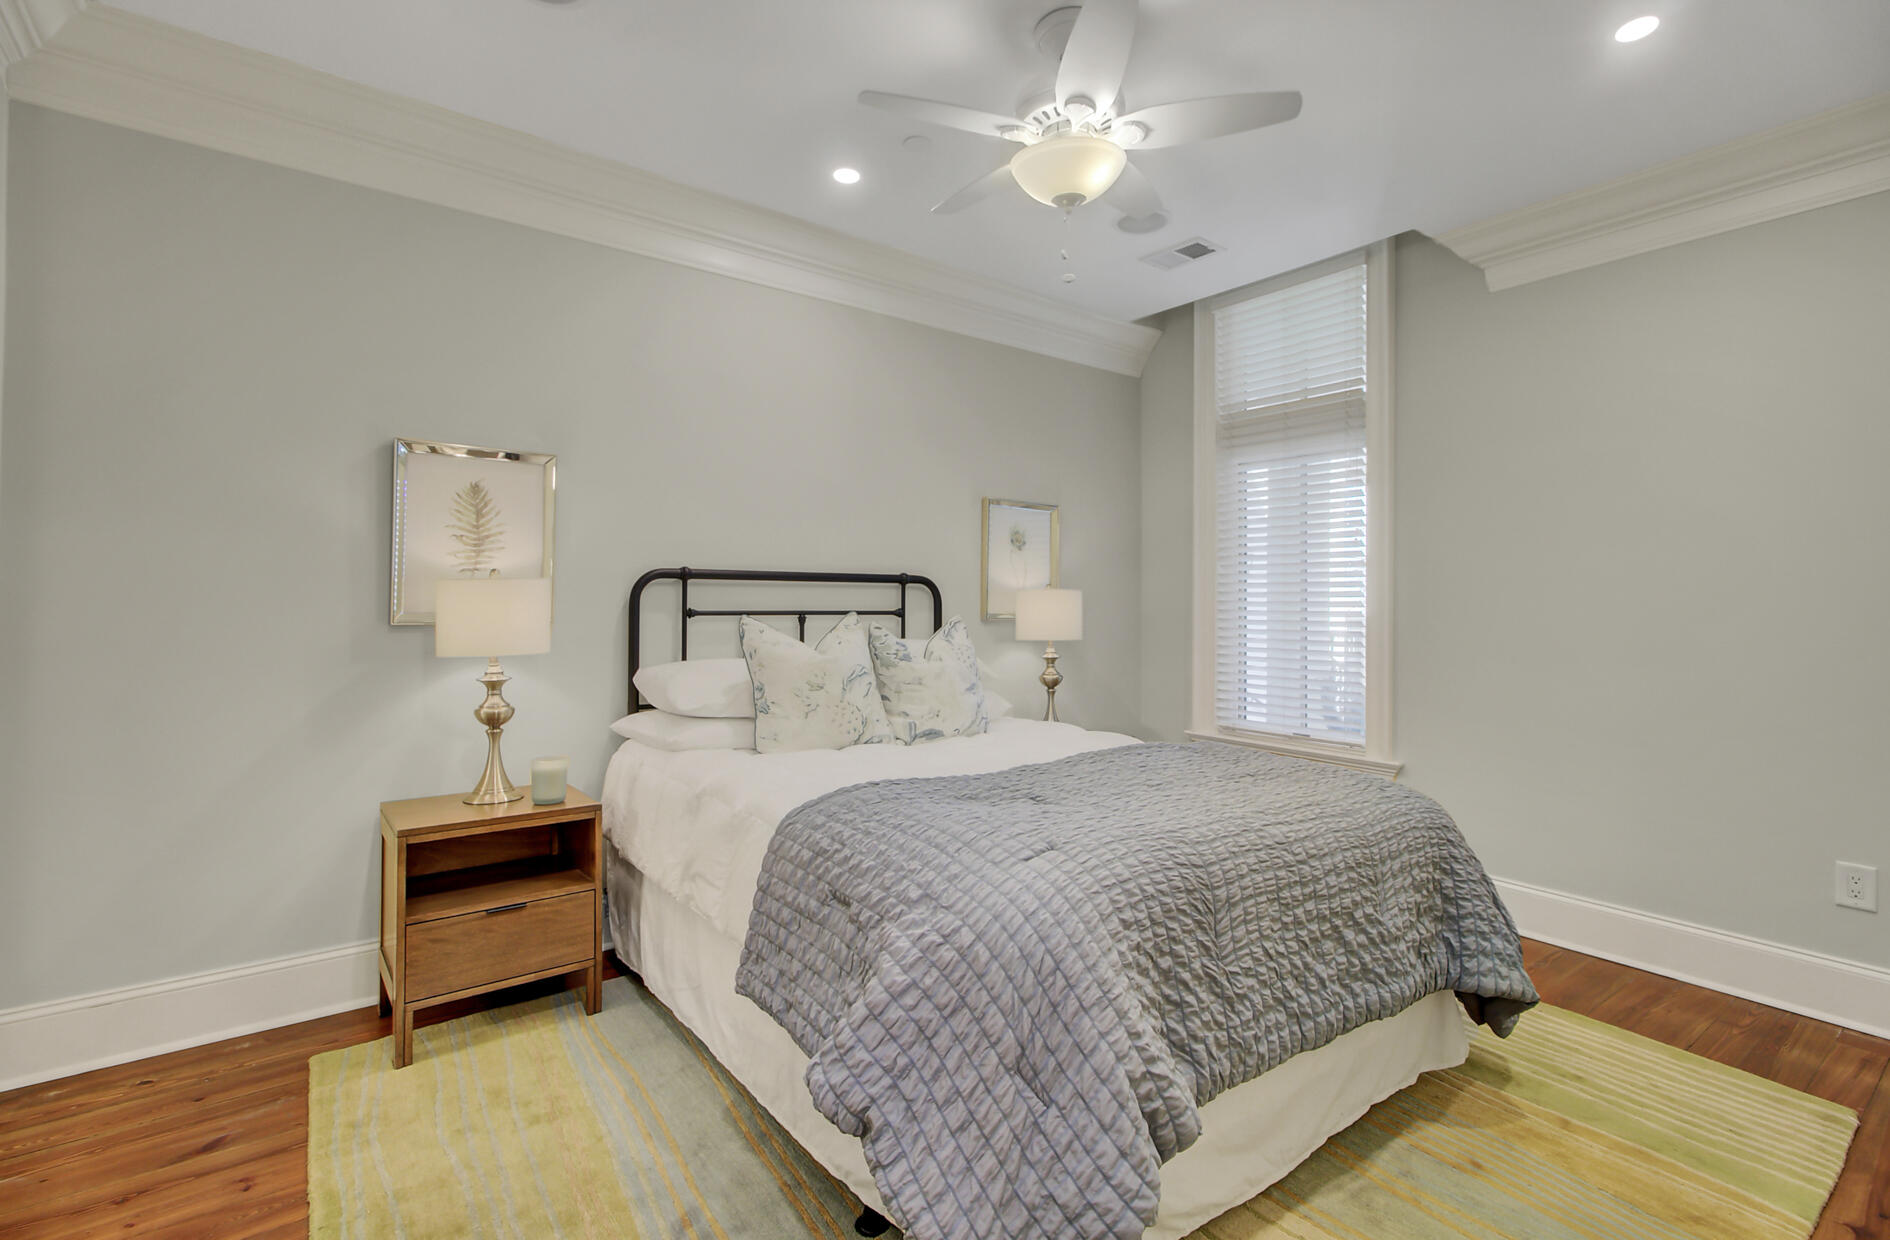 French Quarter Homes For Sale - 175 Concord, Charleston, SC - 11